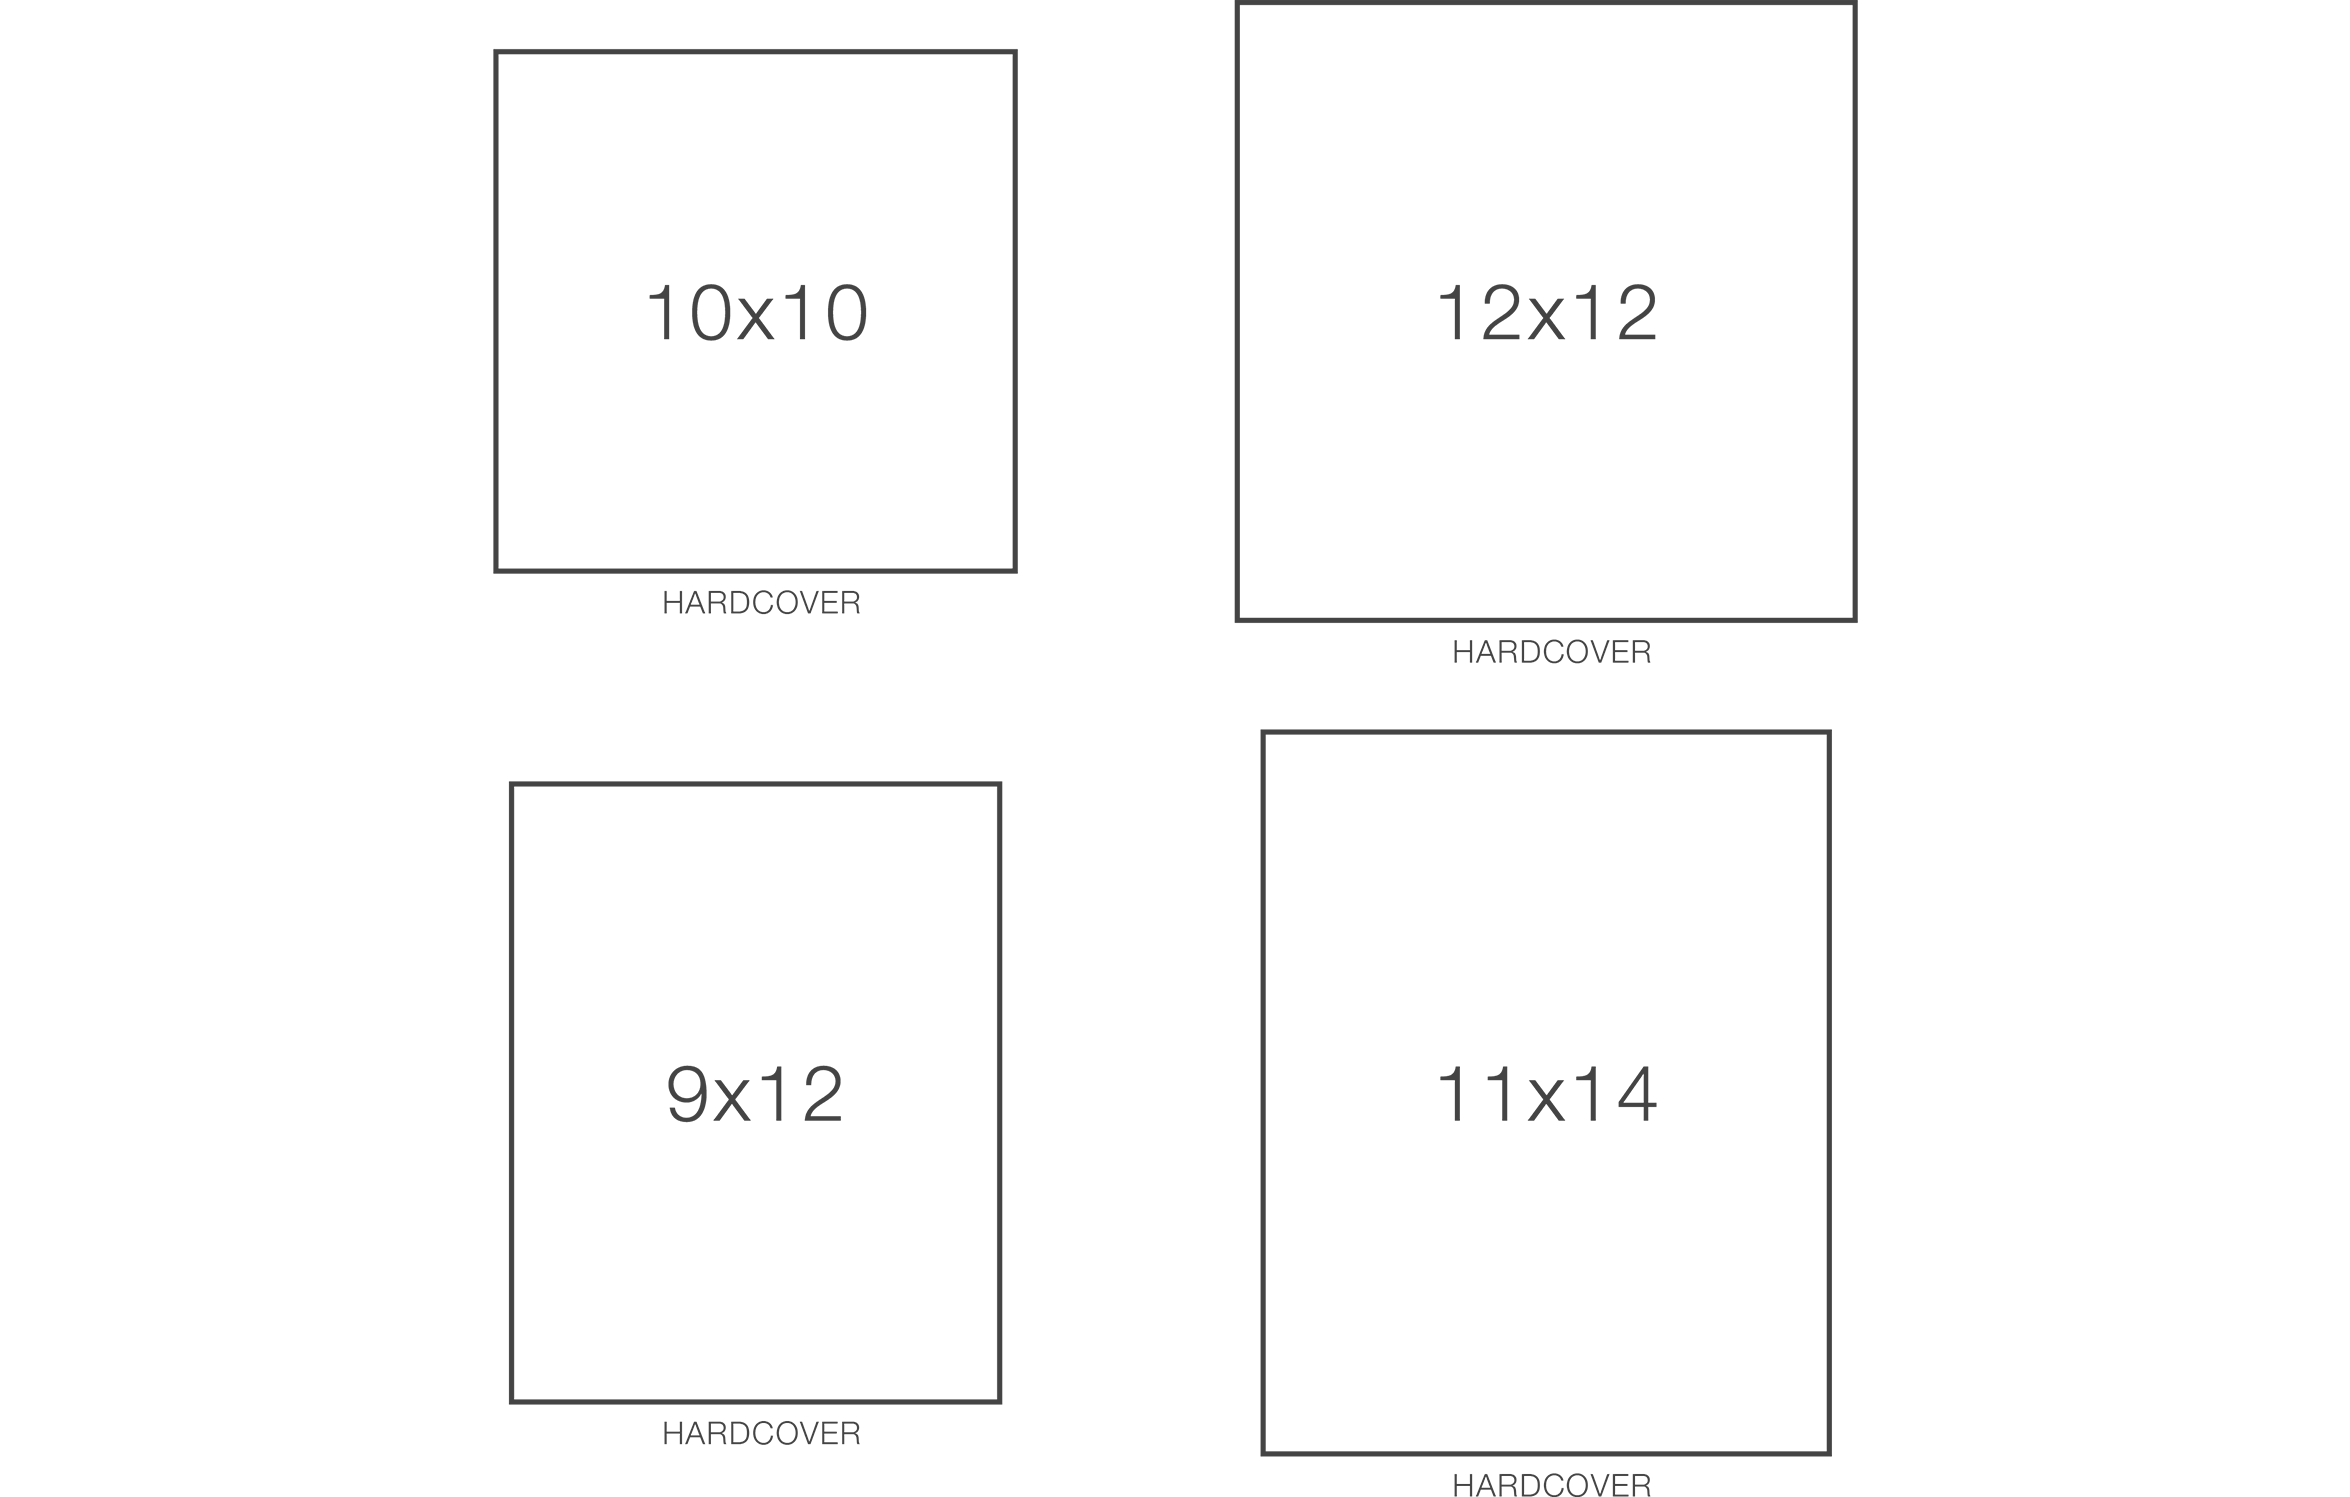 Hardcover Book Sizes